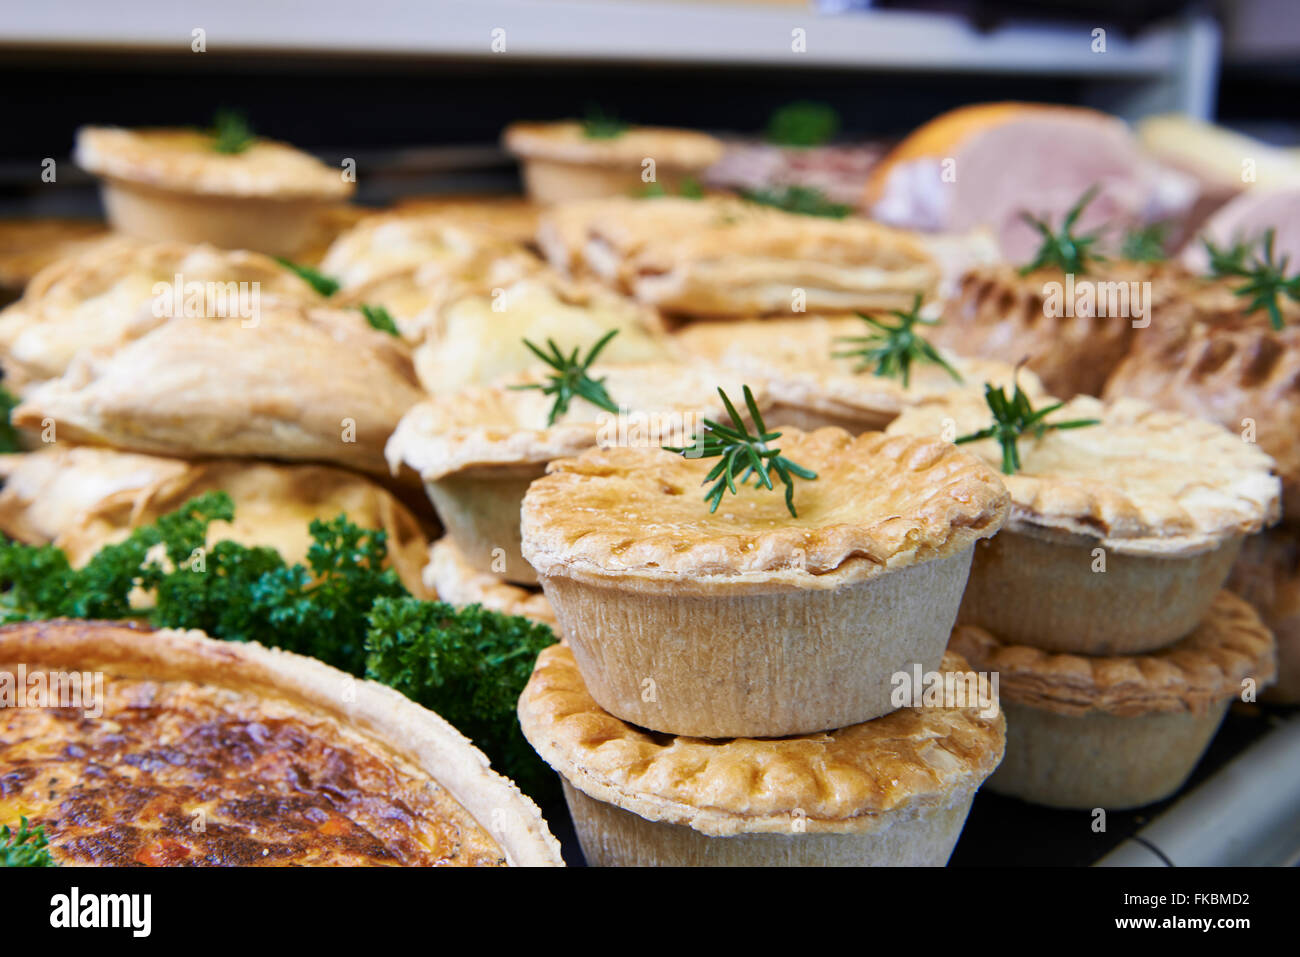 Close Up Of Baked Savoury Goods In Delicatessen - Stock Image